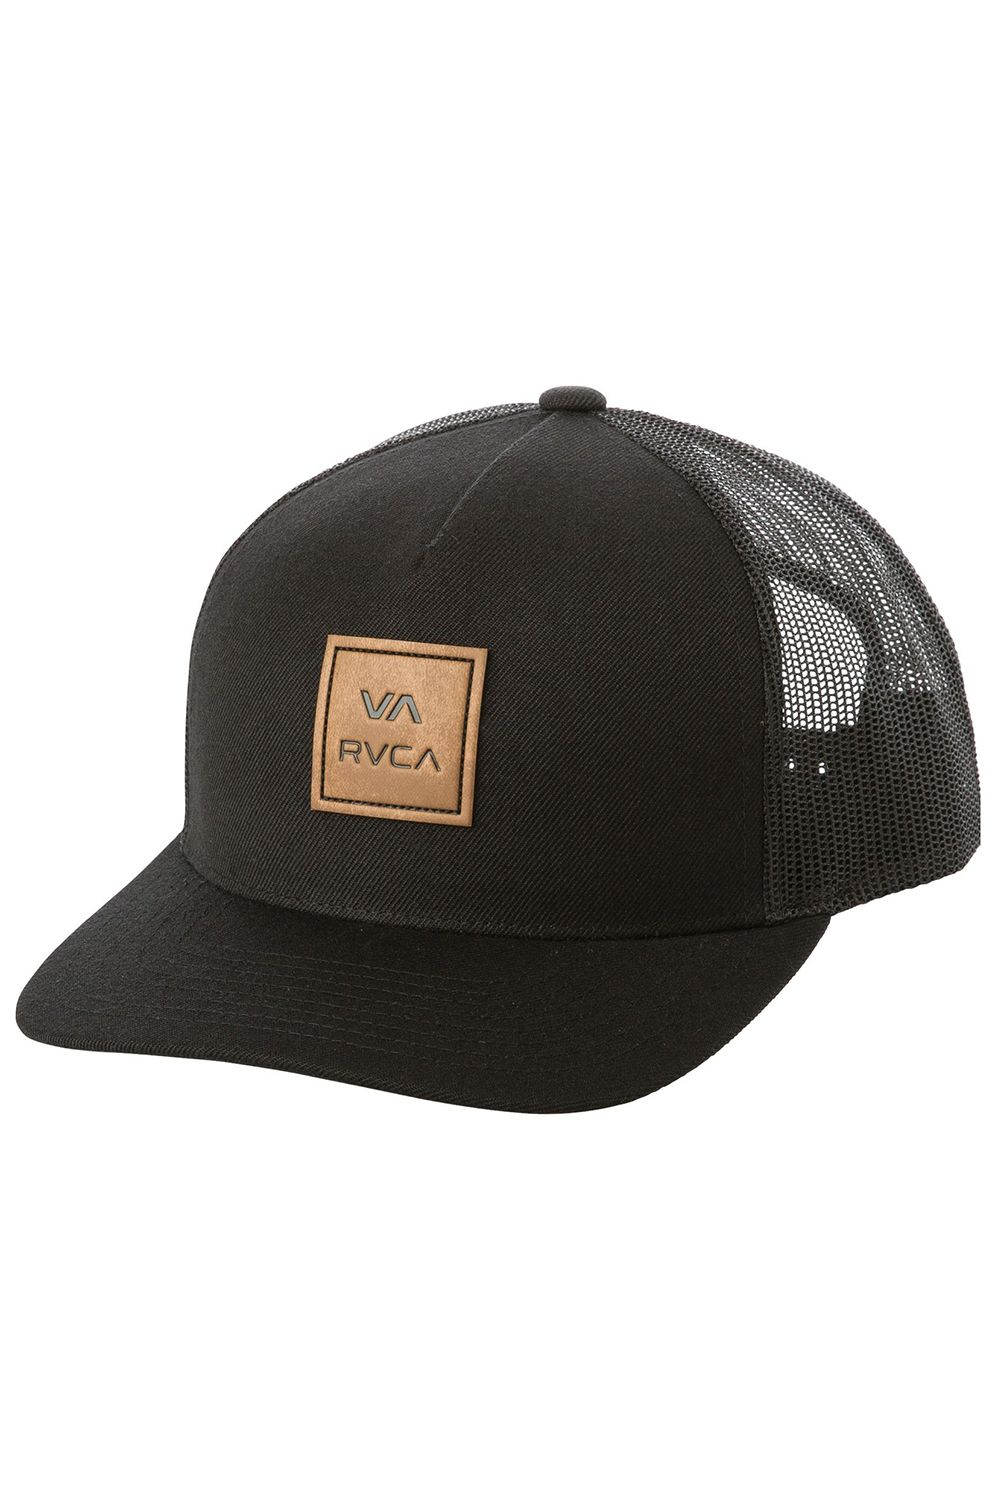 Bone RVCA VA ALL THE WAY CURVE Black